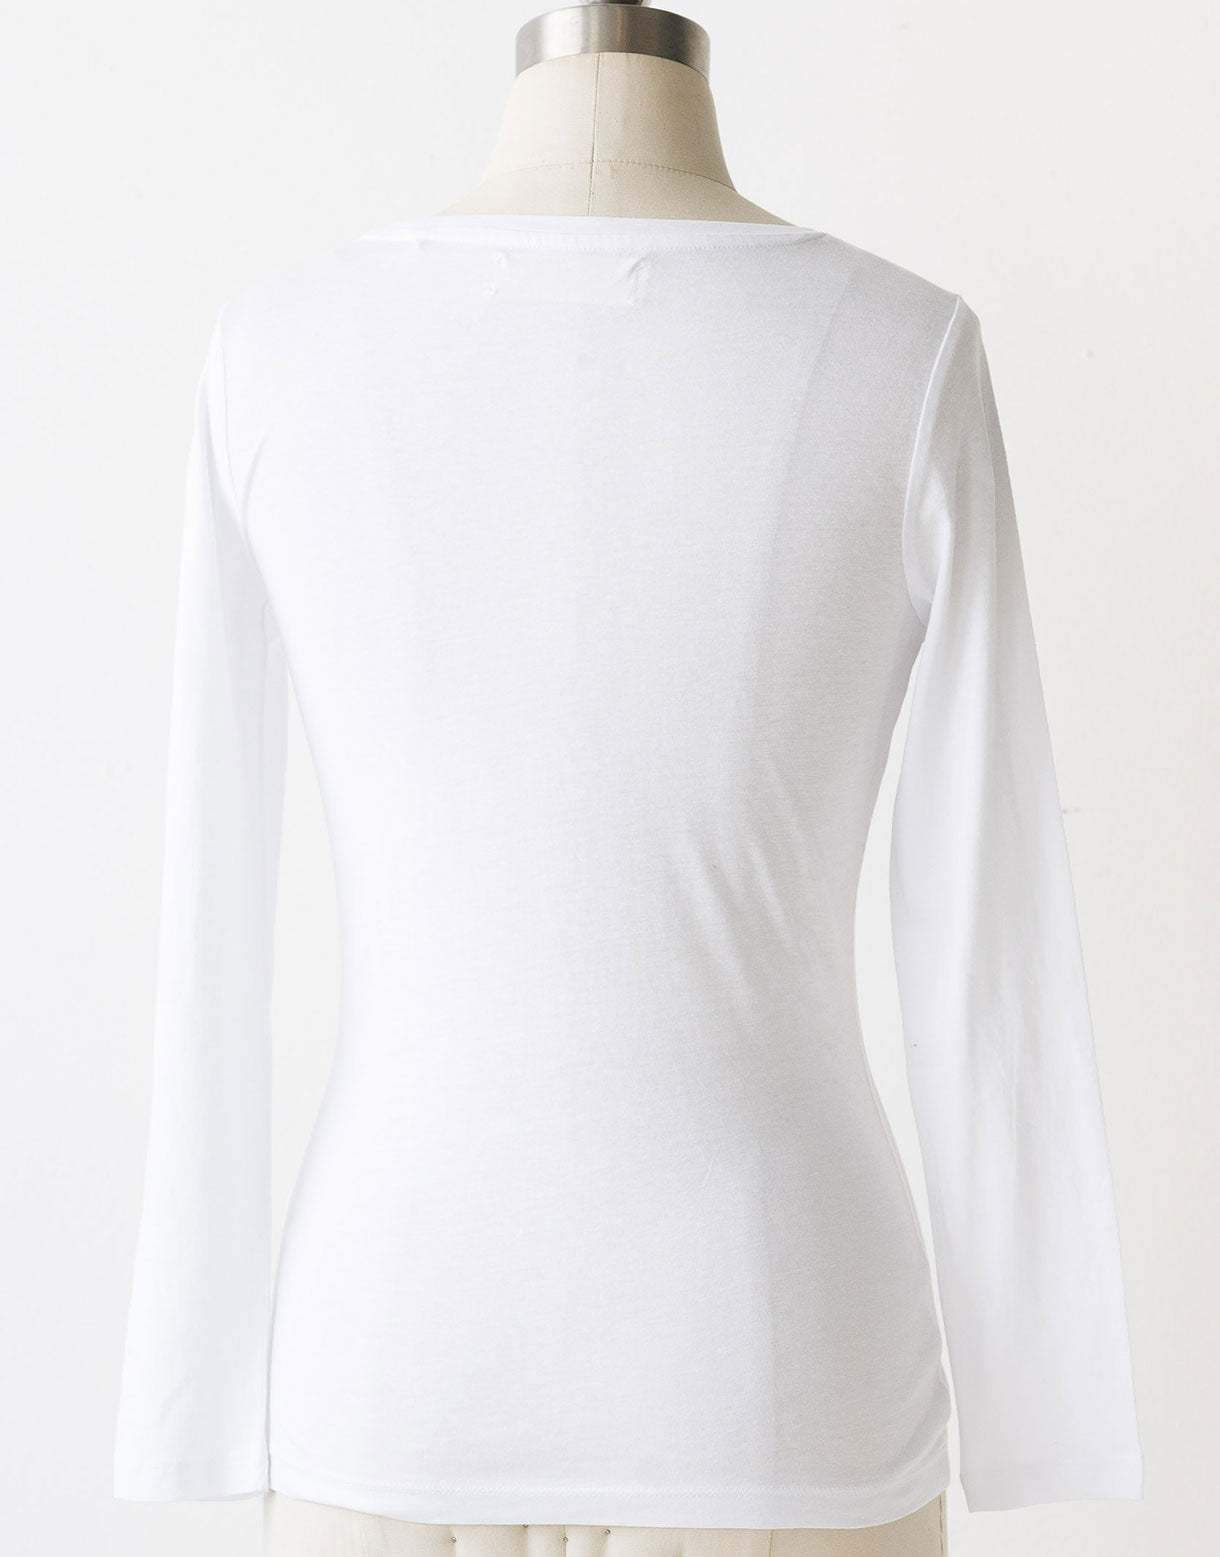 Tia long sleeve lace tee in White *organic cotton